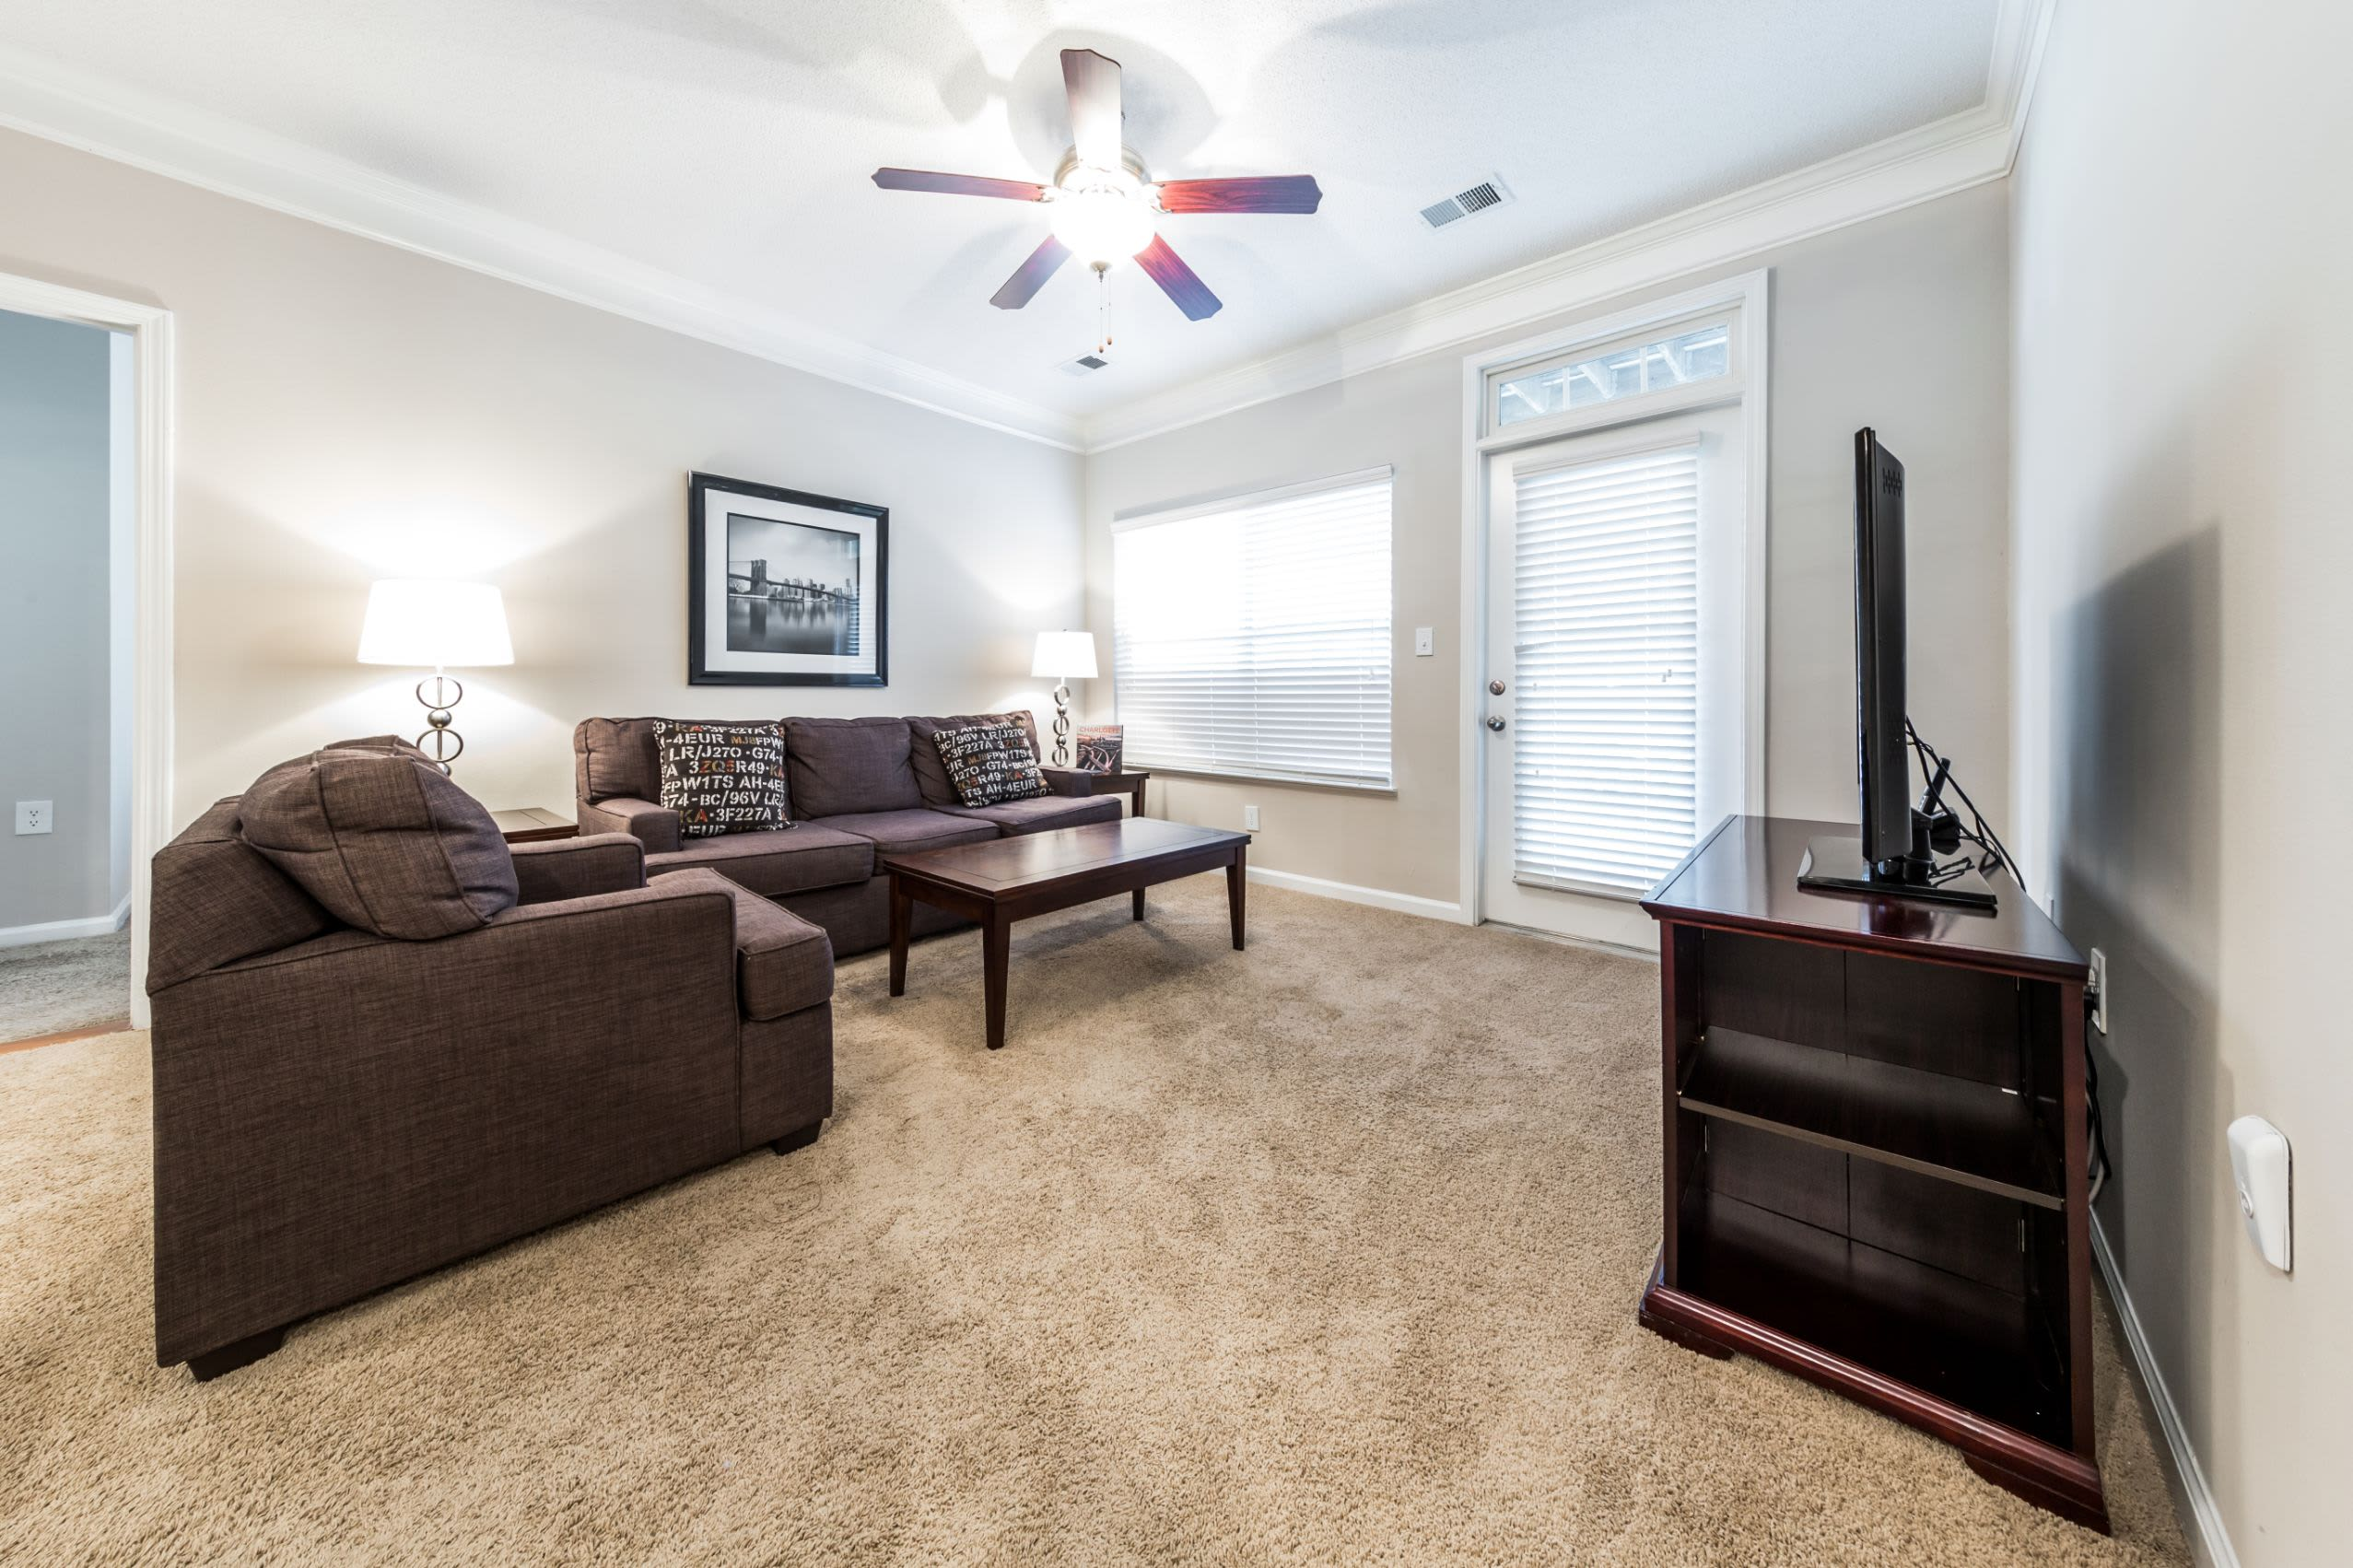 Living area with ceiling fan at The Preserve at Ballantyne Commons in Charlotte, North Carolina